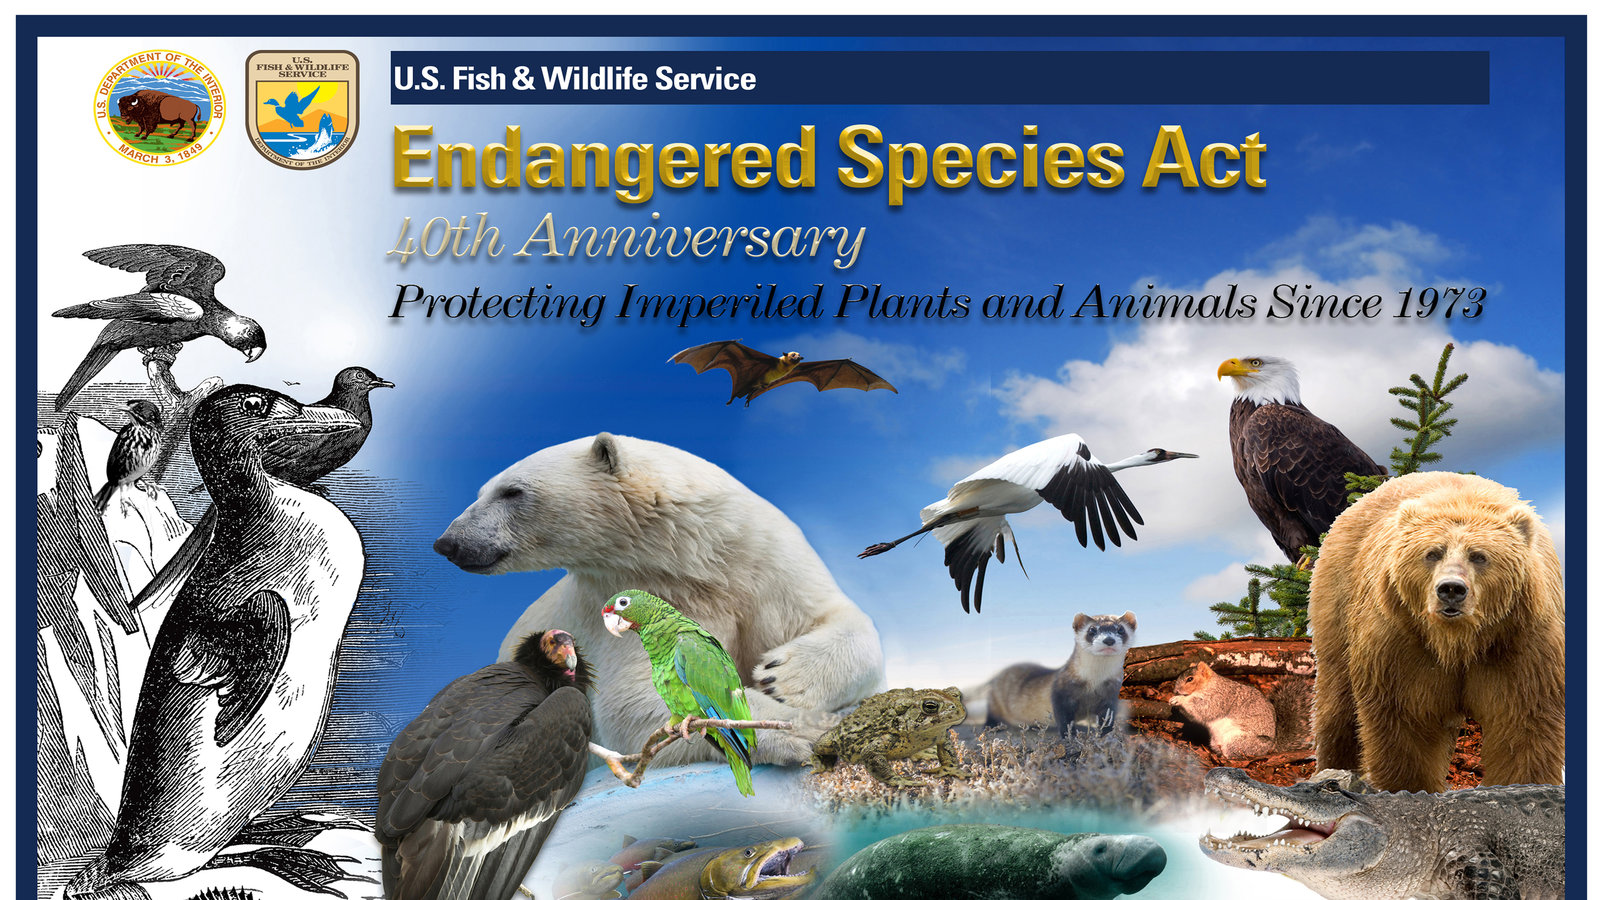 1973 endangered species act research topic The endangered species act, passed into law in 1973 it requires federal and state governments to protect all species threatened with extinction that fall within the borders of the united states and its outlying territories.